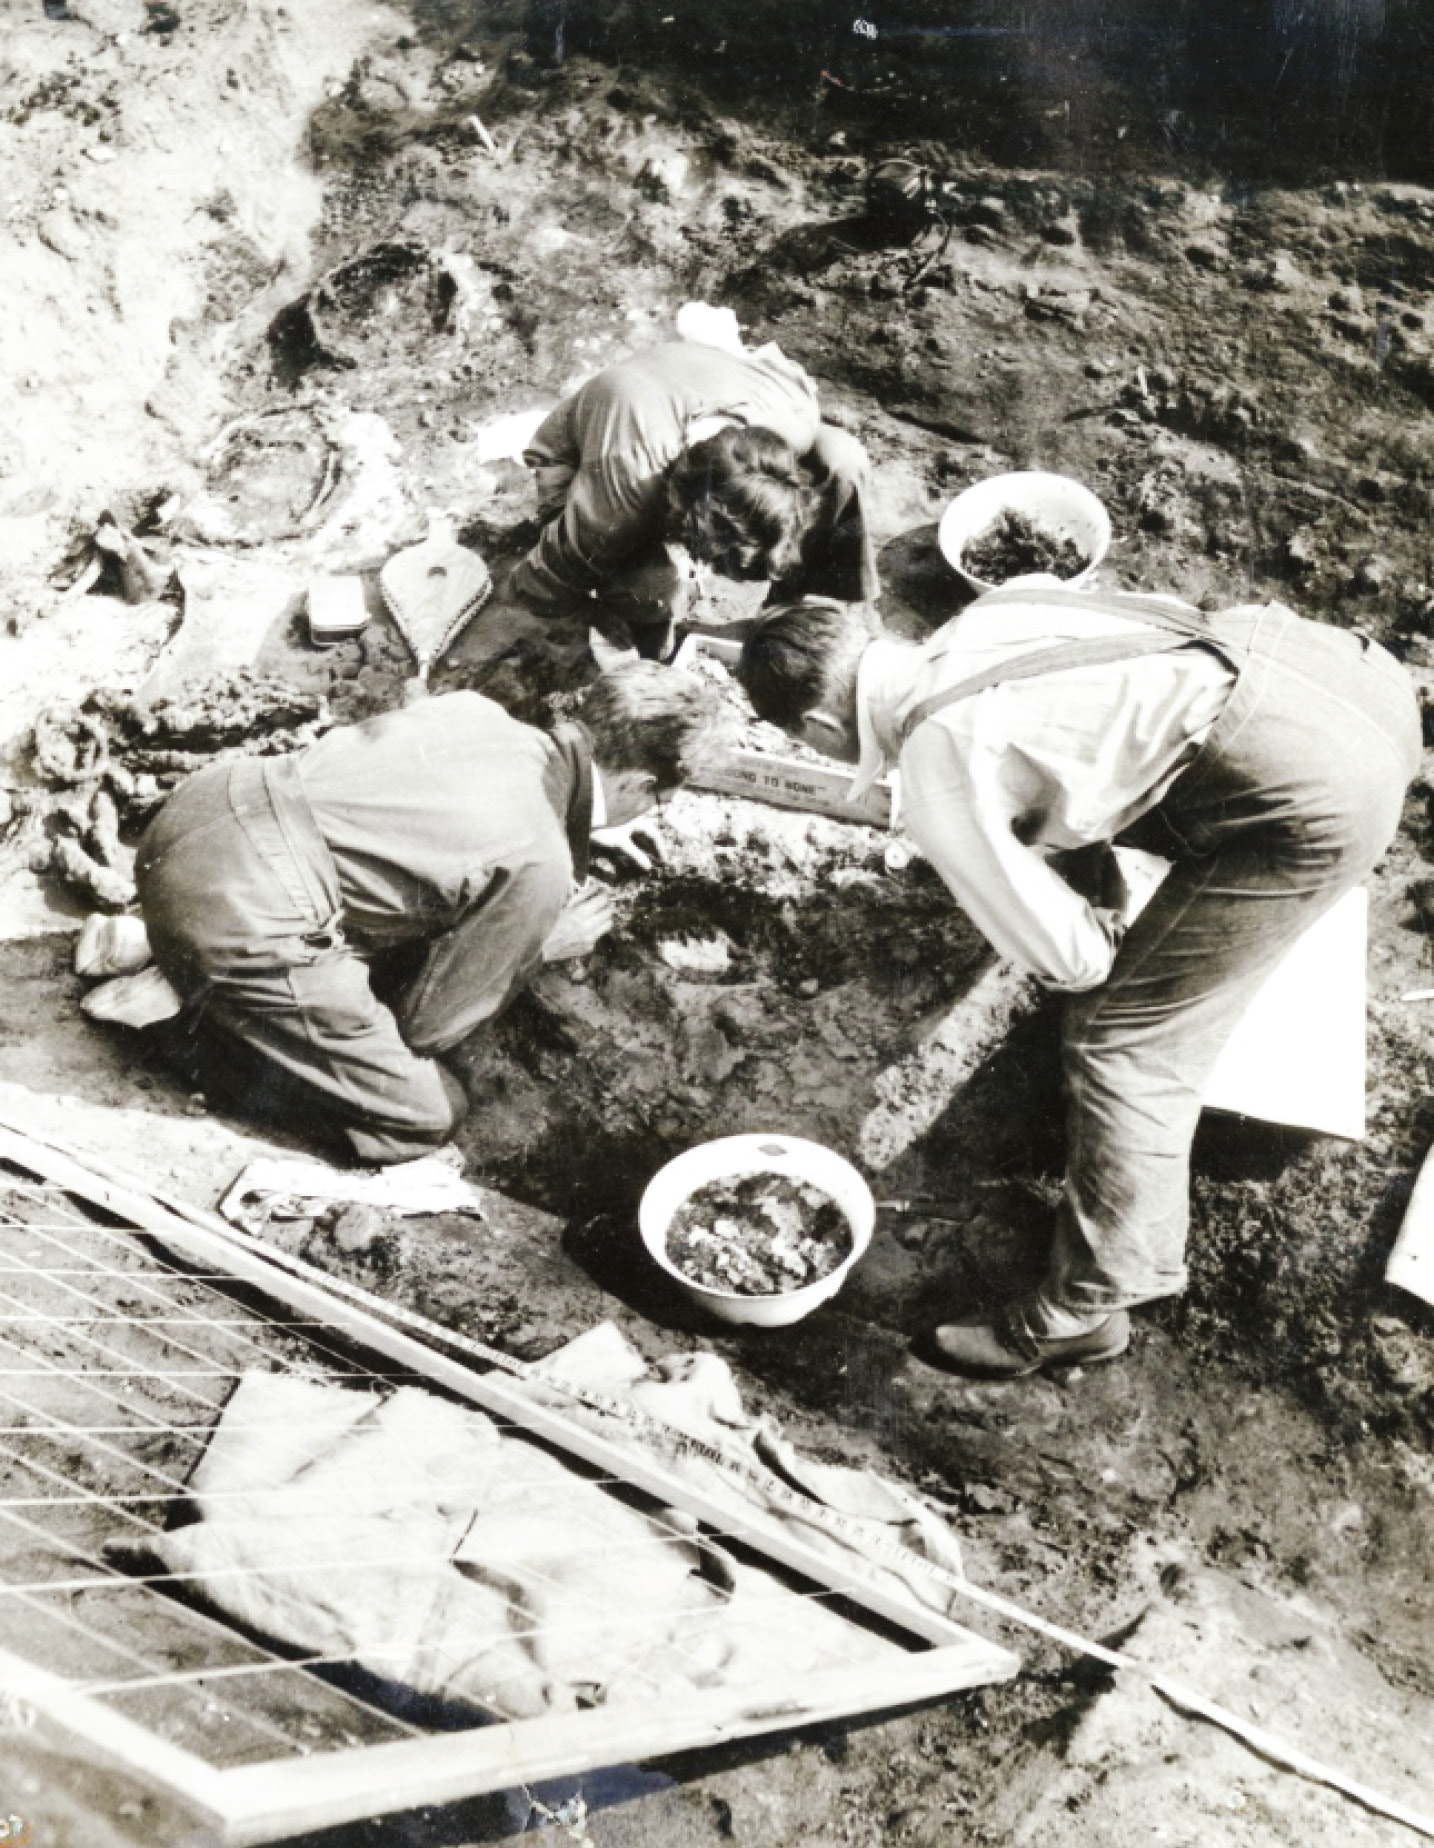 LEFT This photograph shows the 1939 dig team excavating the central chamber of the Mound 1 ship burial at Sutton Hoo. Peggy Piggott is pictured in the centre.